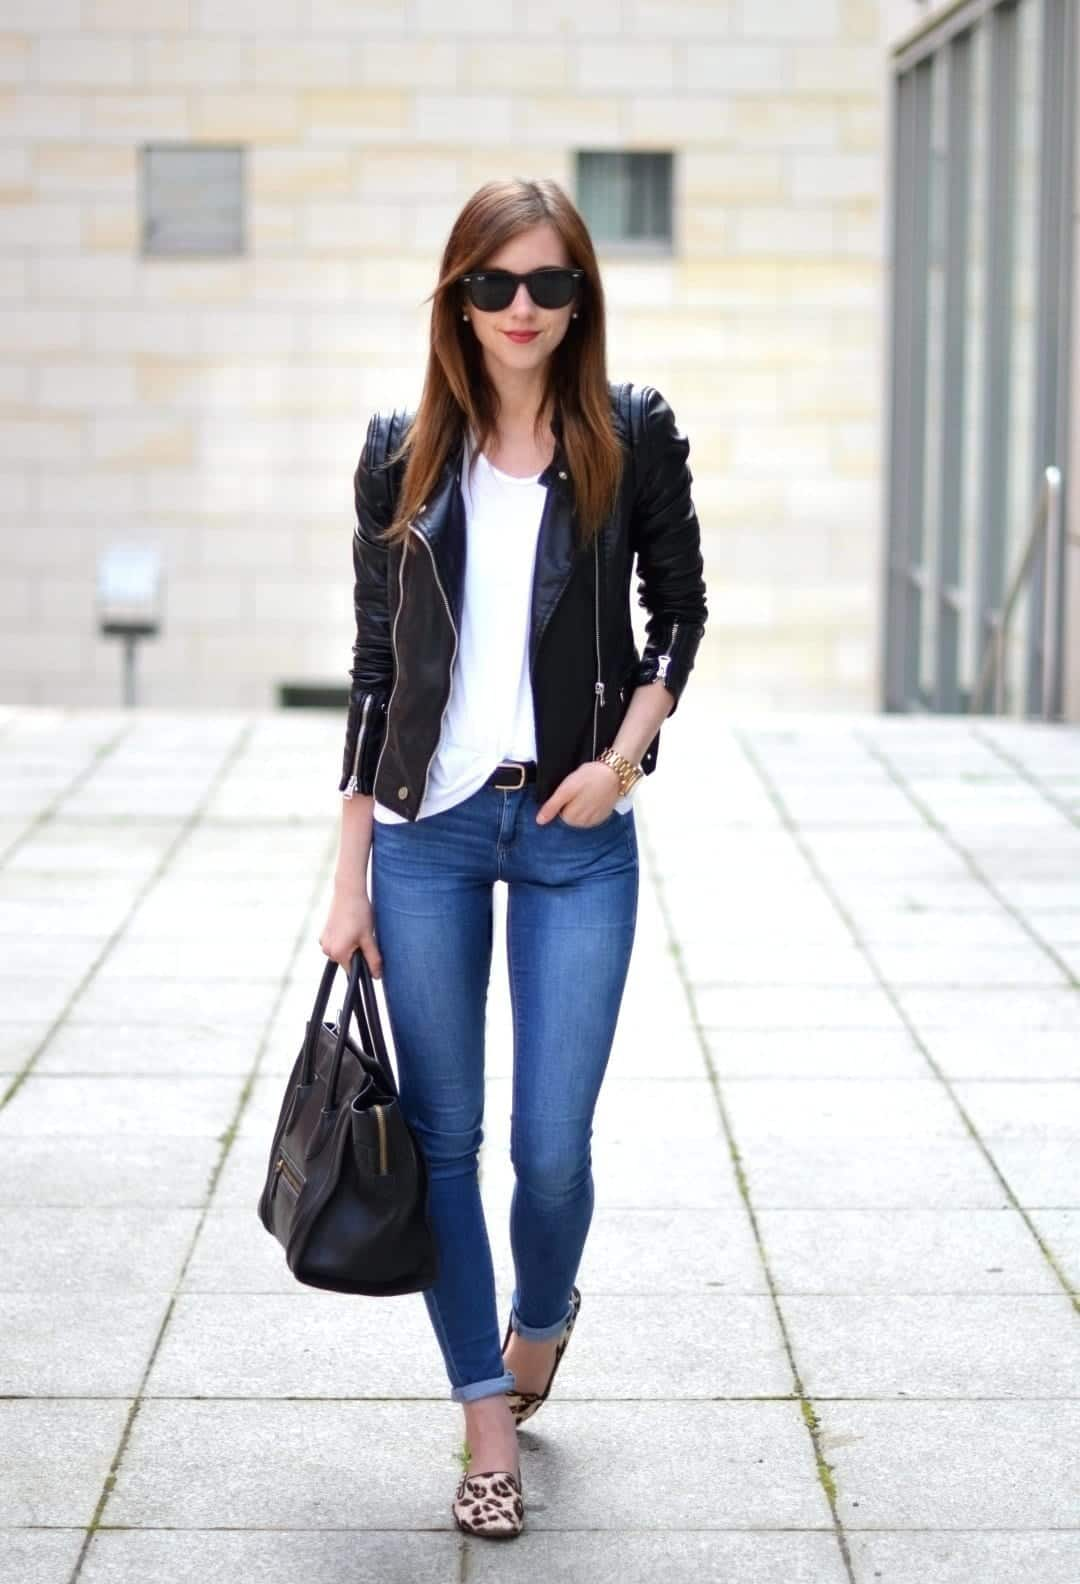 How-to-style-jacket-for-work Fashionable Business Attire-15 Casual Work Outfits for Women